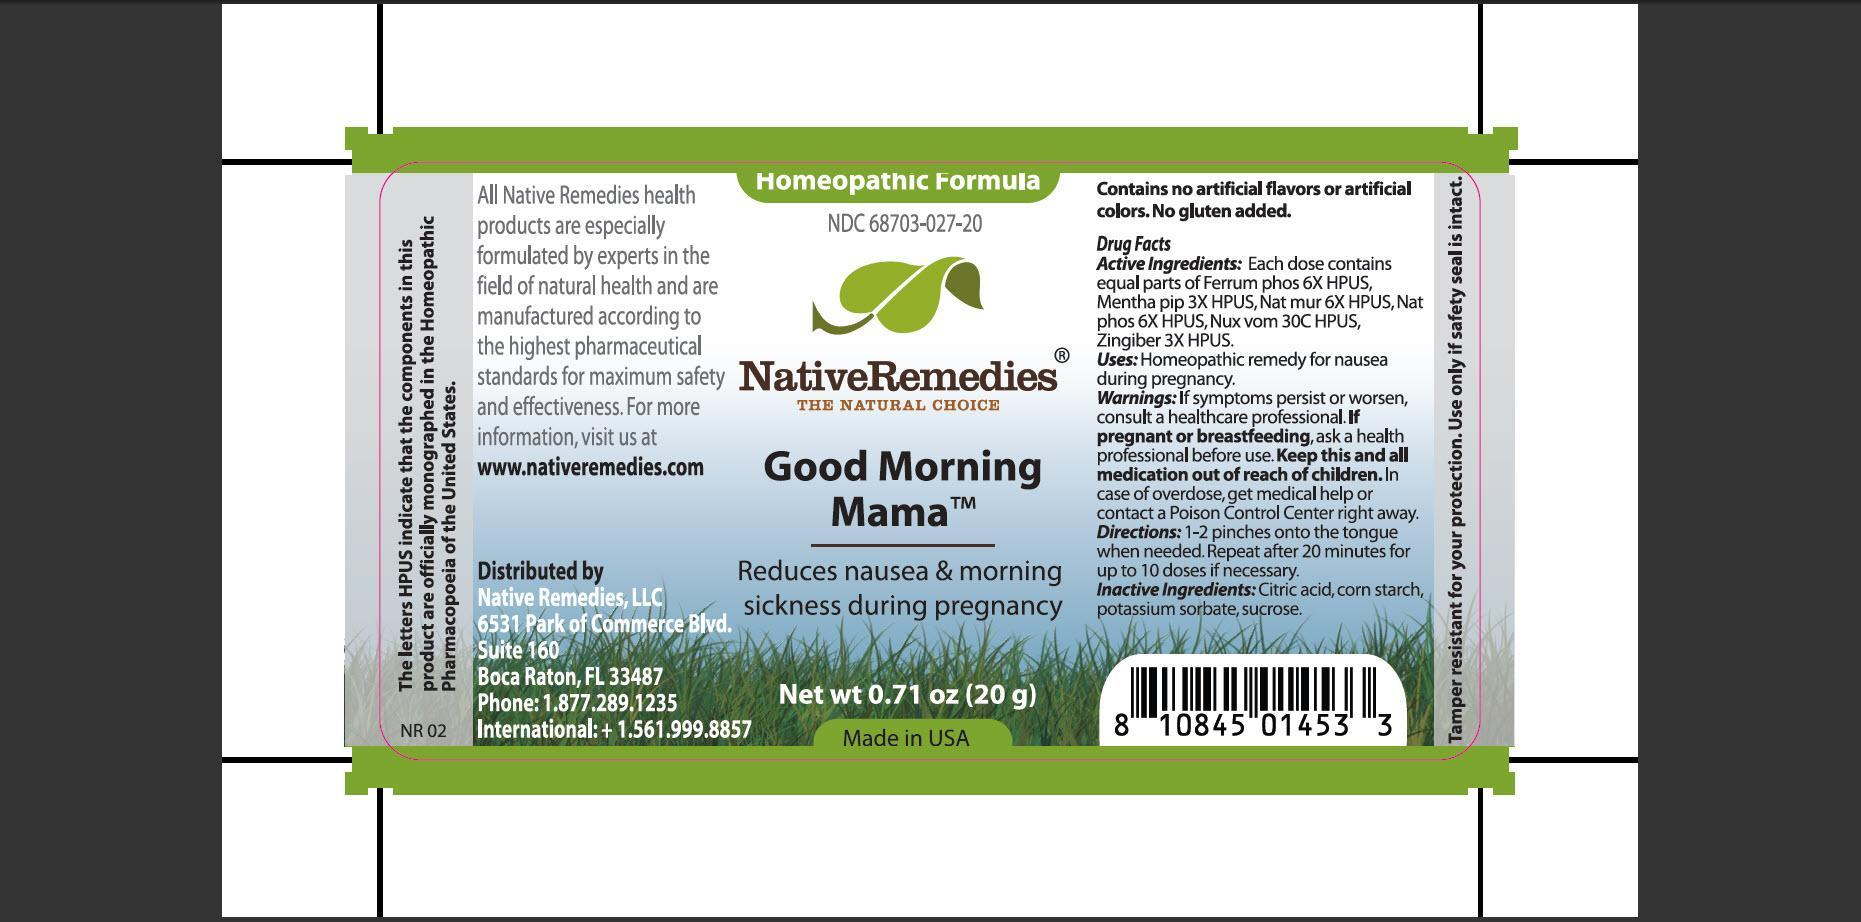 Good Morning Mama (Ferrum Phos, Mentha Pip, Nat Mur, Nat Phos, Nux Vom, Zingiber) Granule [Native Remedies, Llc]